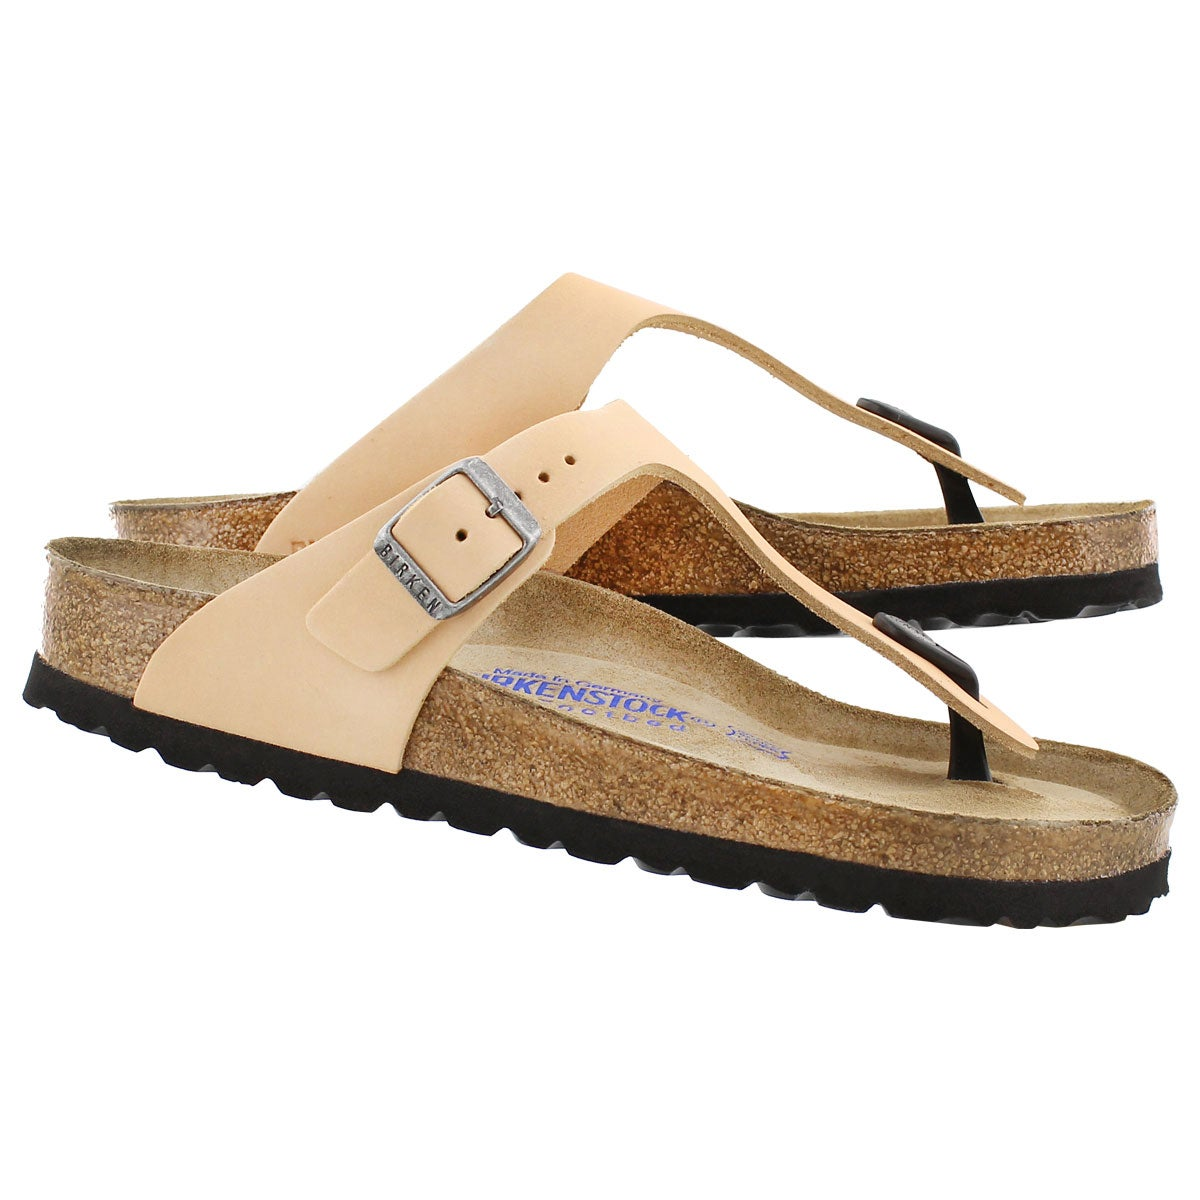 Lds Gizeh sand thong sandal - SF